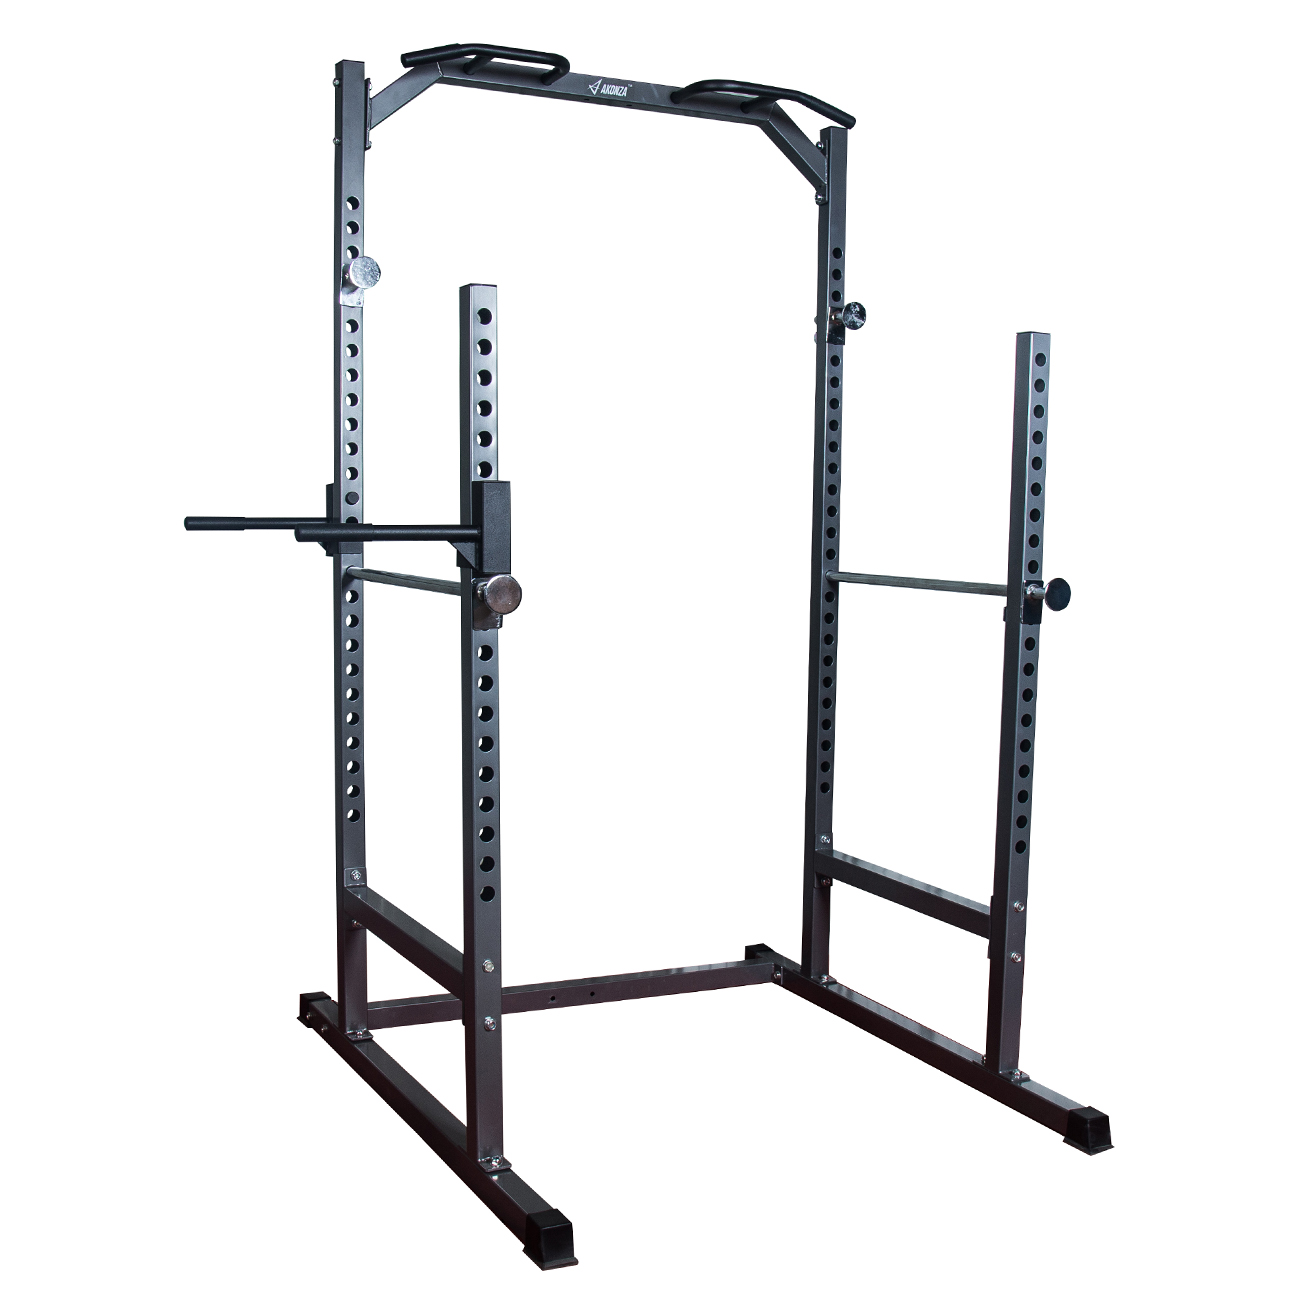 AKONZA Heavy Duty Half Power Cage Dip Station Squat Rack Bench Pull Up Chin-Up Training, Gray